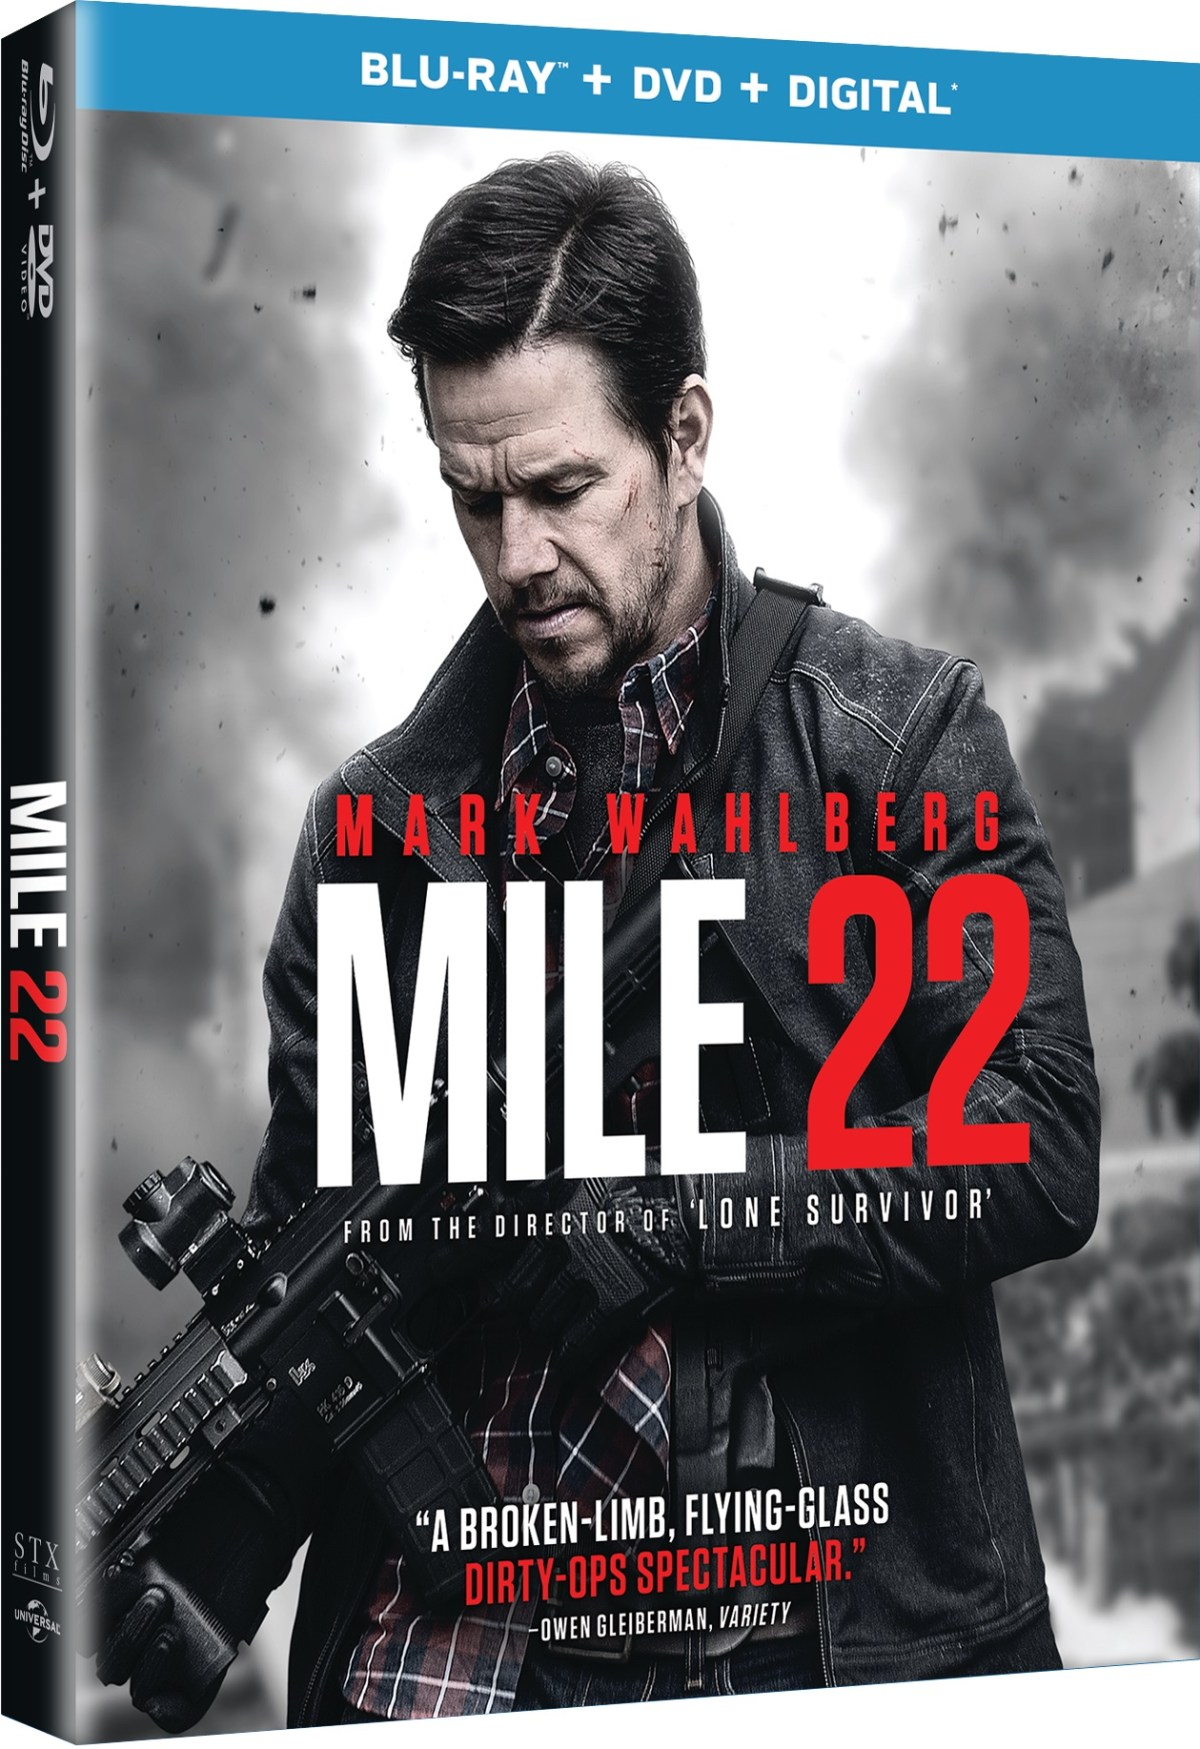 [GIVEAWAY] Win 'Mile 22' On Blu-ray Combo Pack: Available On Blu-ray & DVD November 13, 2018 From Universal 16